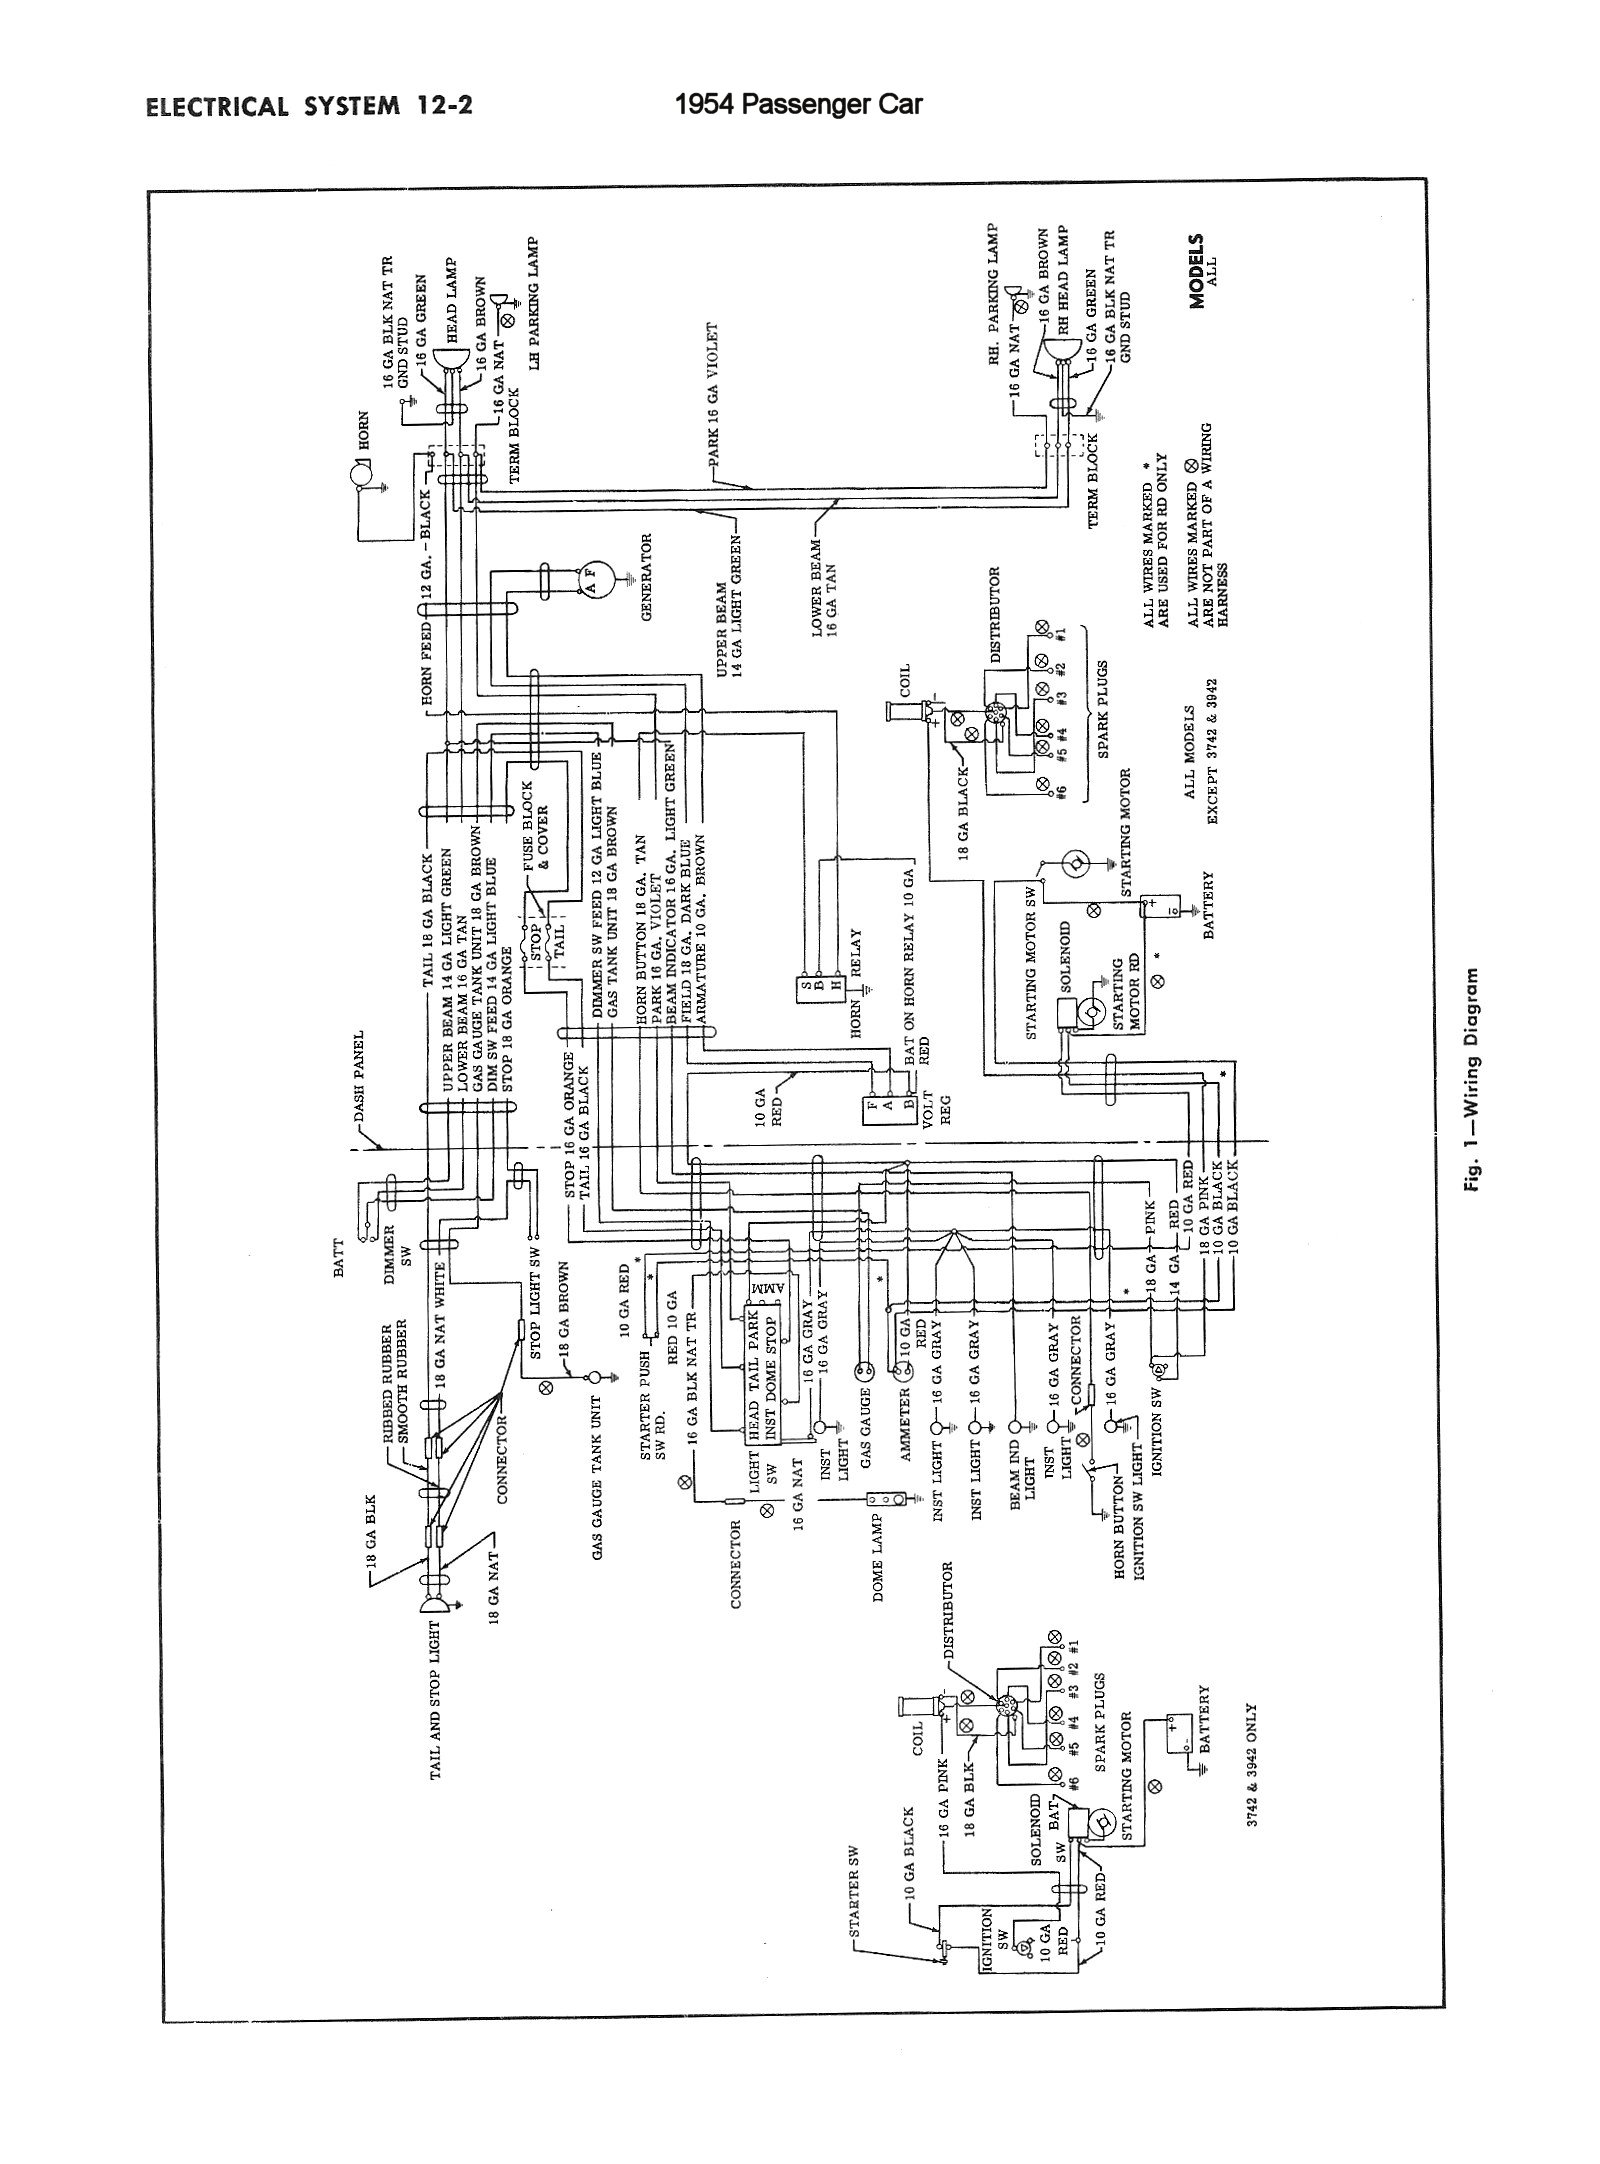 1950 Chevy Headlight Switch Wiring Diagram Free For 1956 Harness Plug Ing Into Diagrams Rh Oldcarmanualproject Com 55 Truck